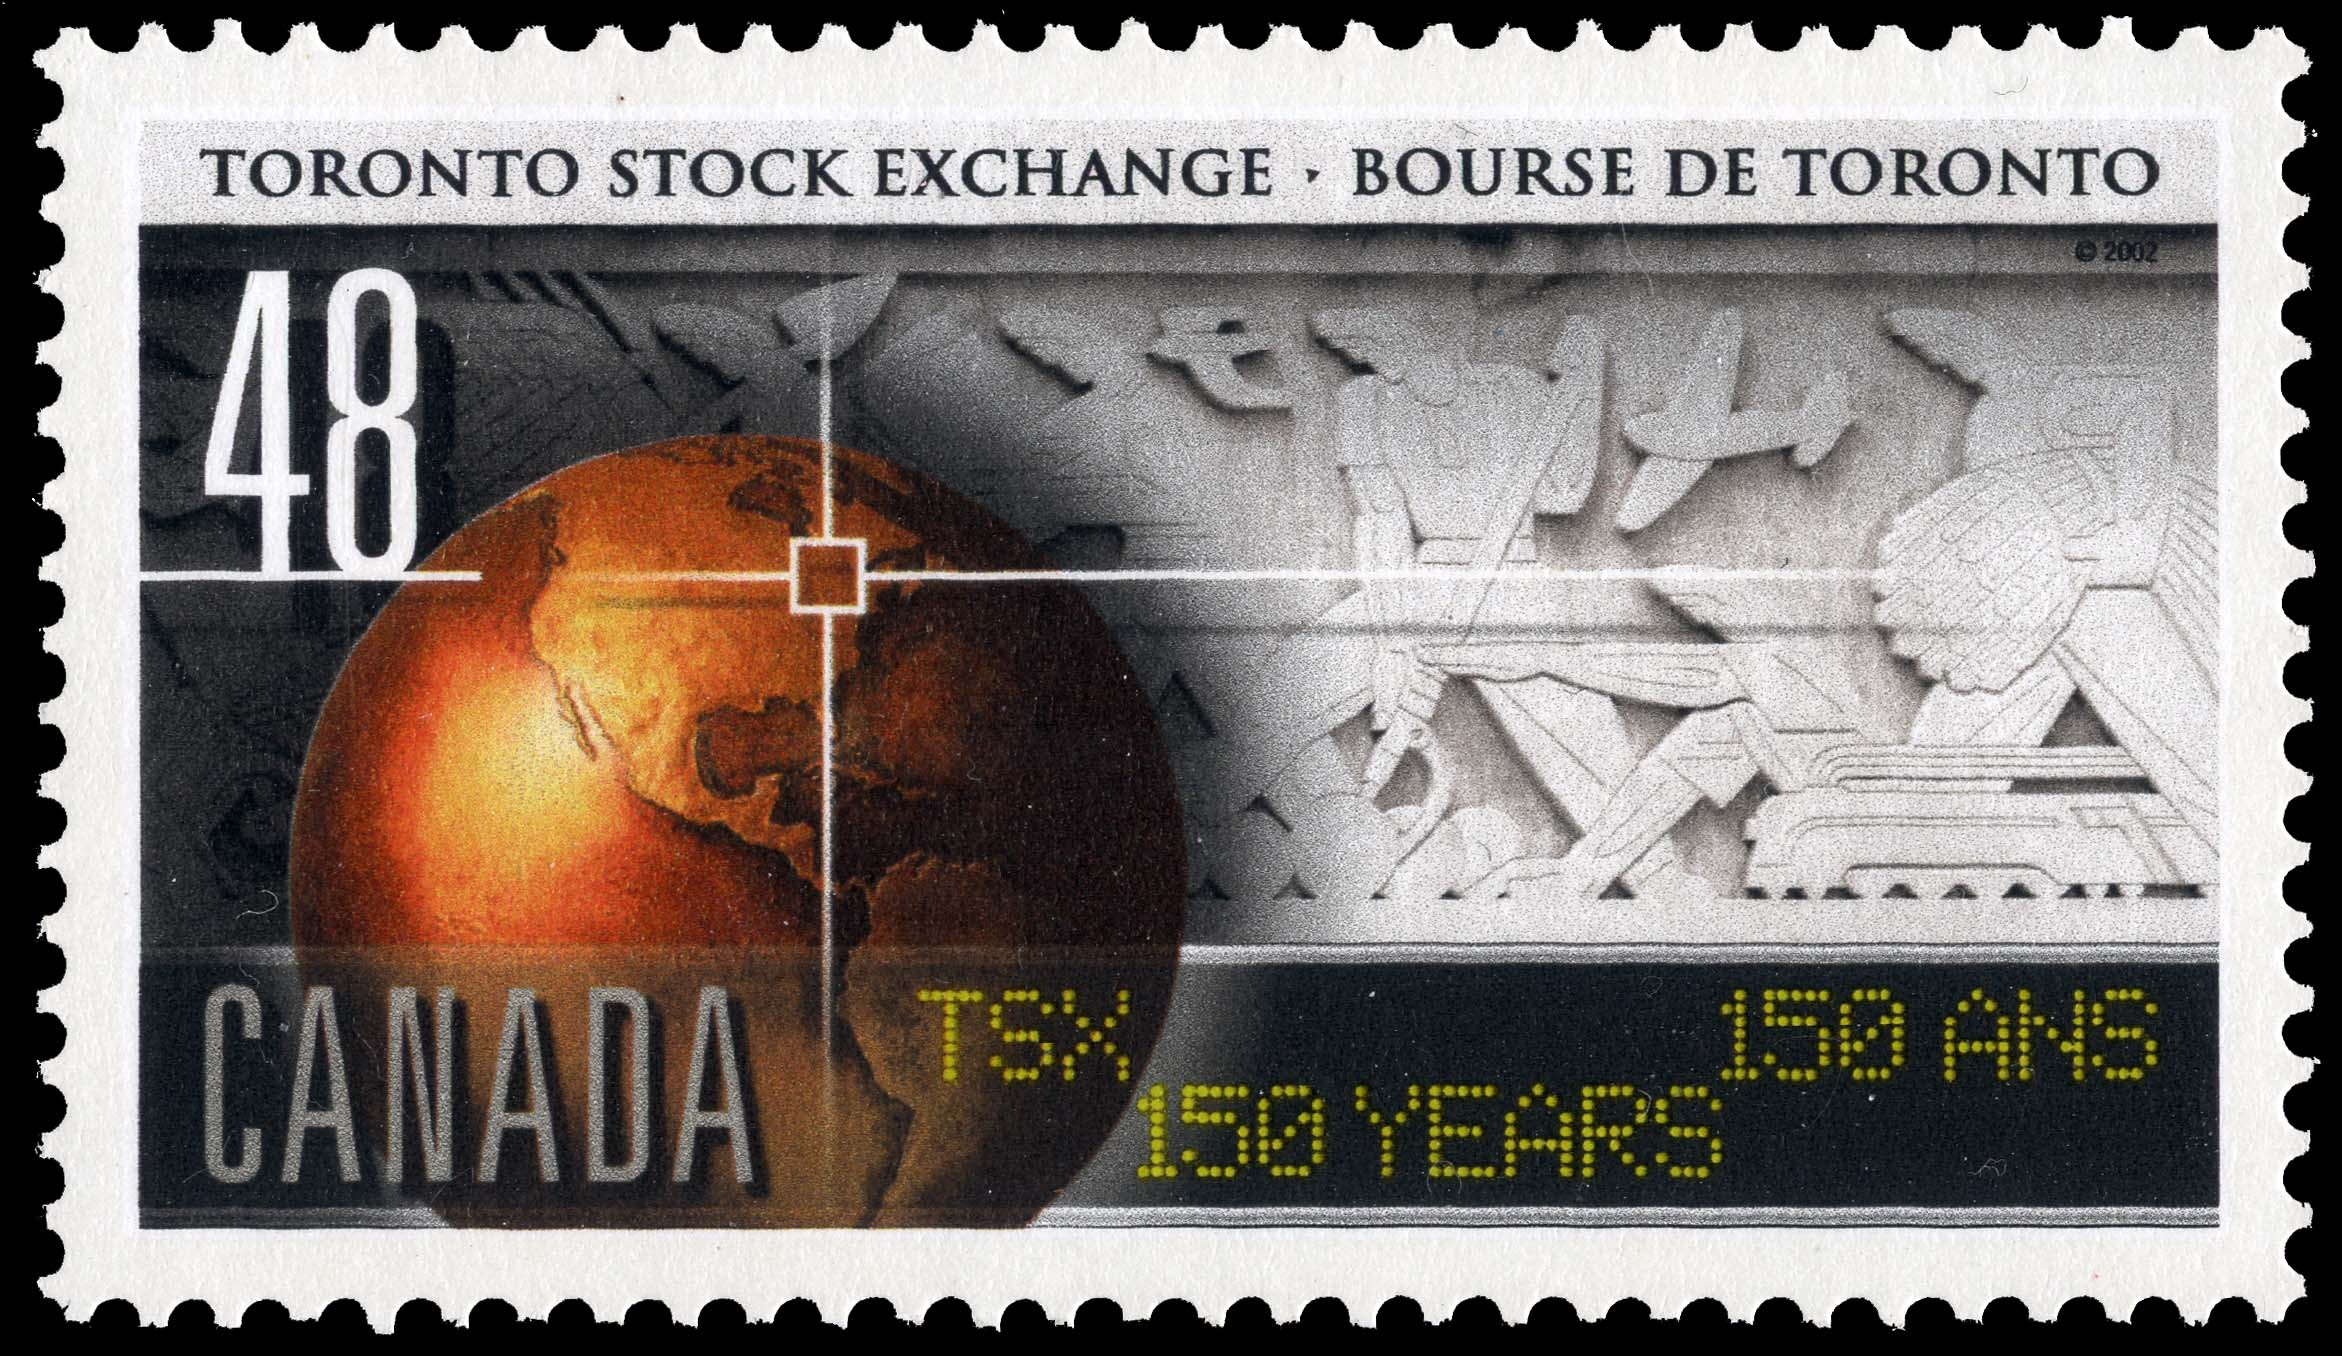 Toronto Stock Exchange, TSX, 150 Years Canada Postage Stamp